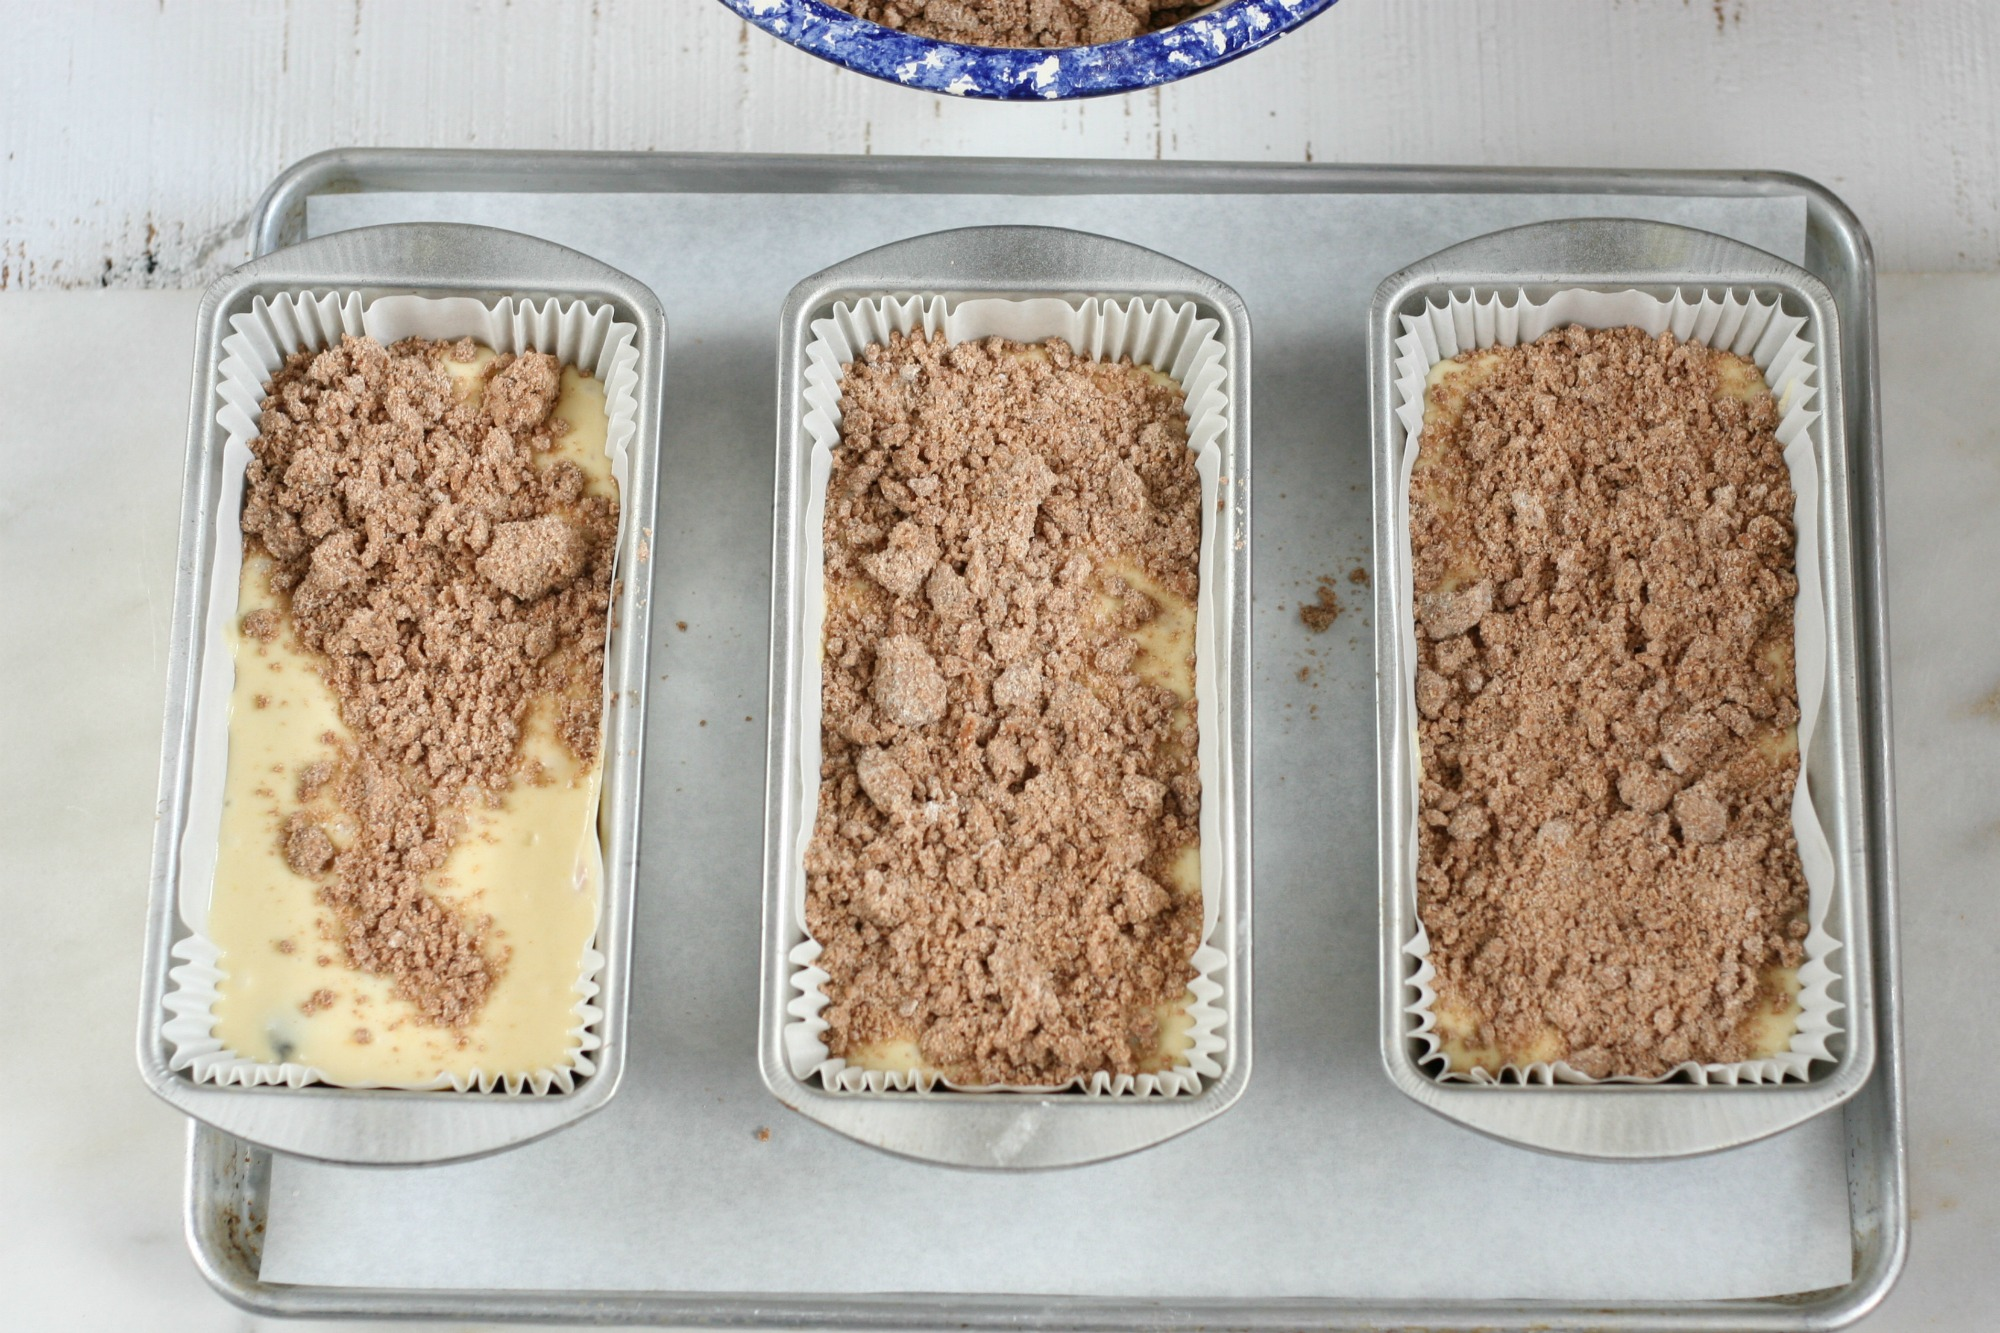 streusel topping being spooned onto coffee cake batter in loaf pans.